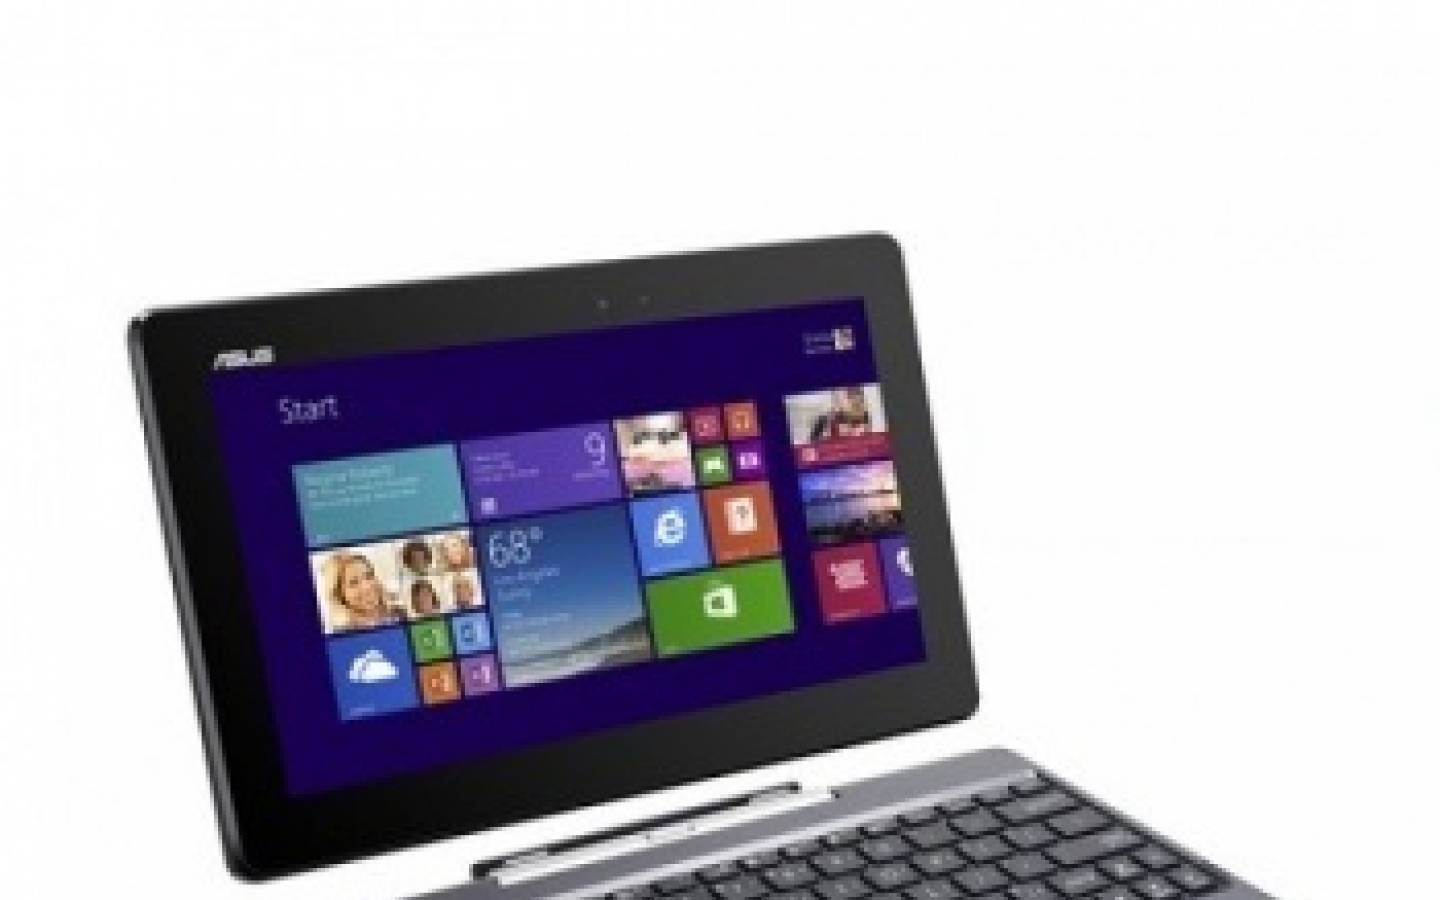 Netbook ASUS TRANSFORMER BOOK Intel T100TAF Atom Z3735